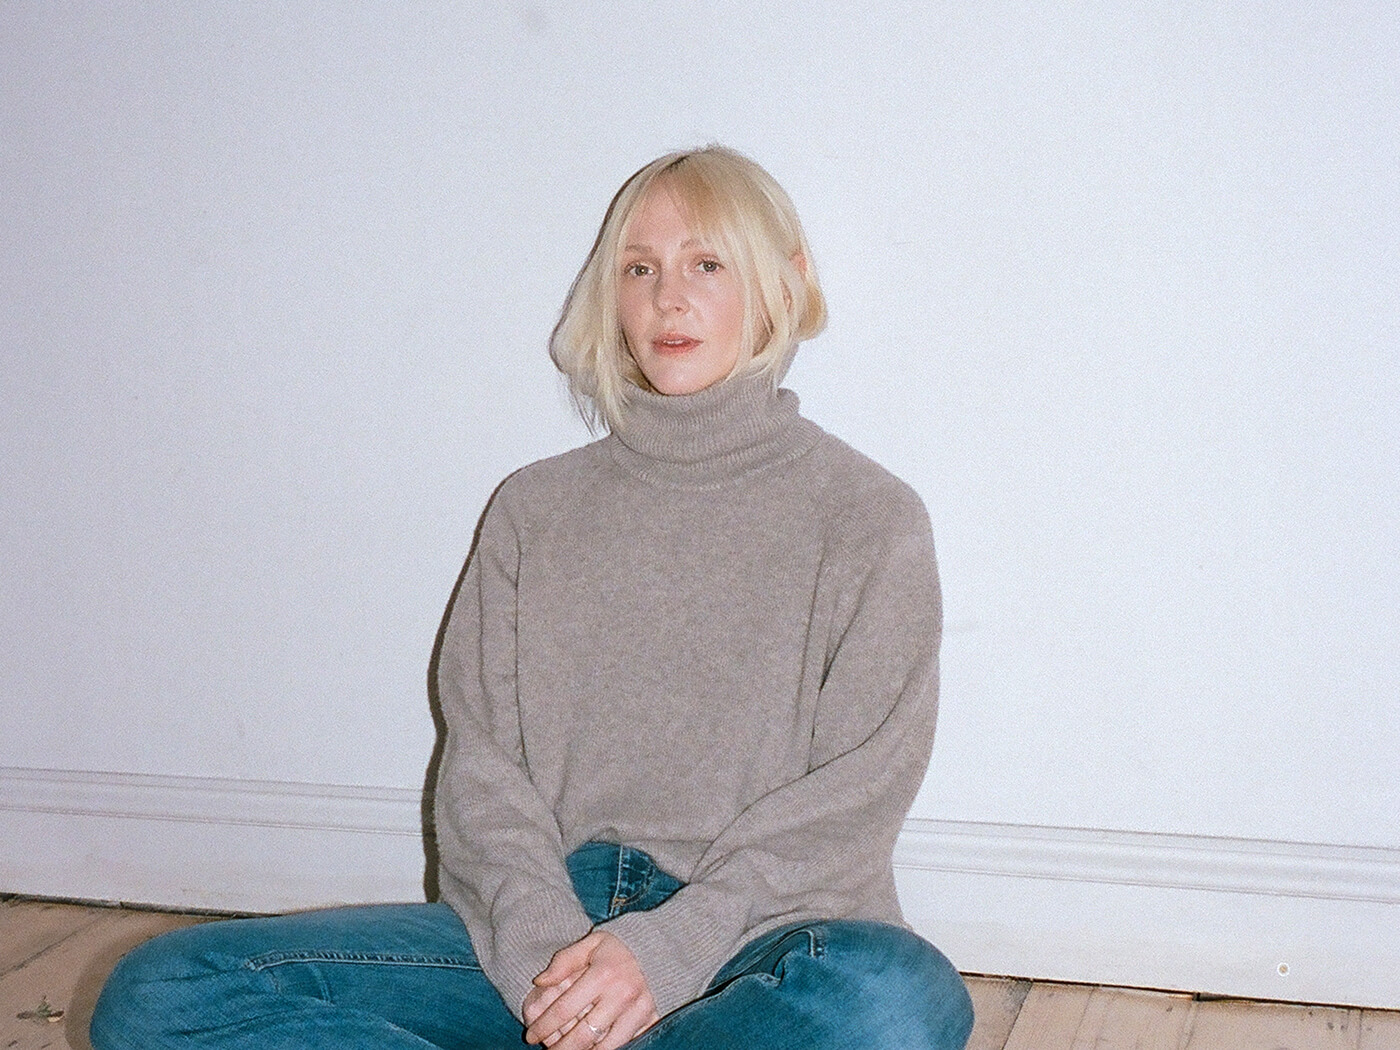 Laura Marling's new album Song For Our Daughter is out this week